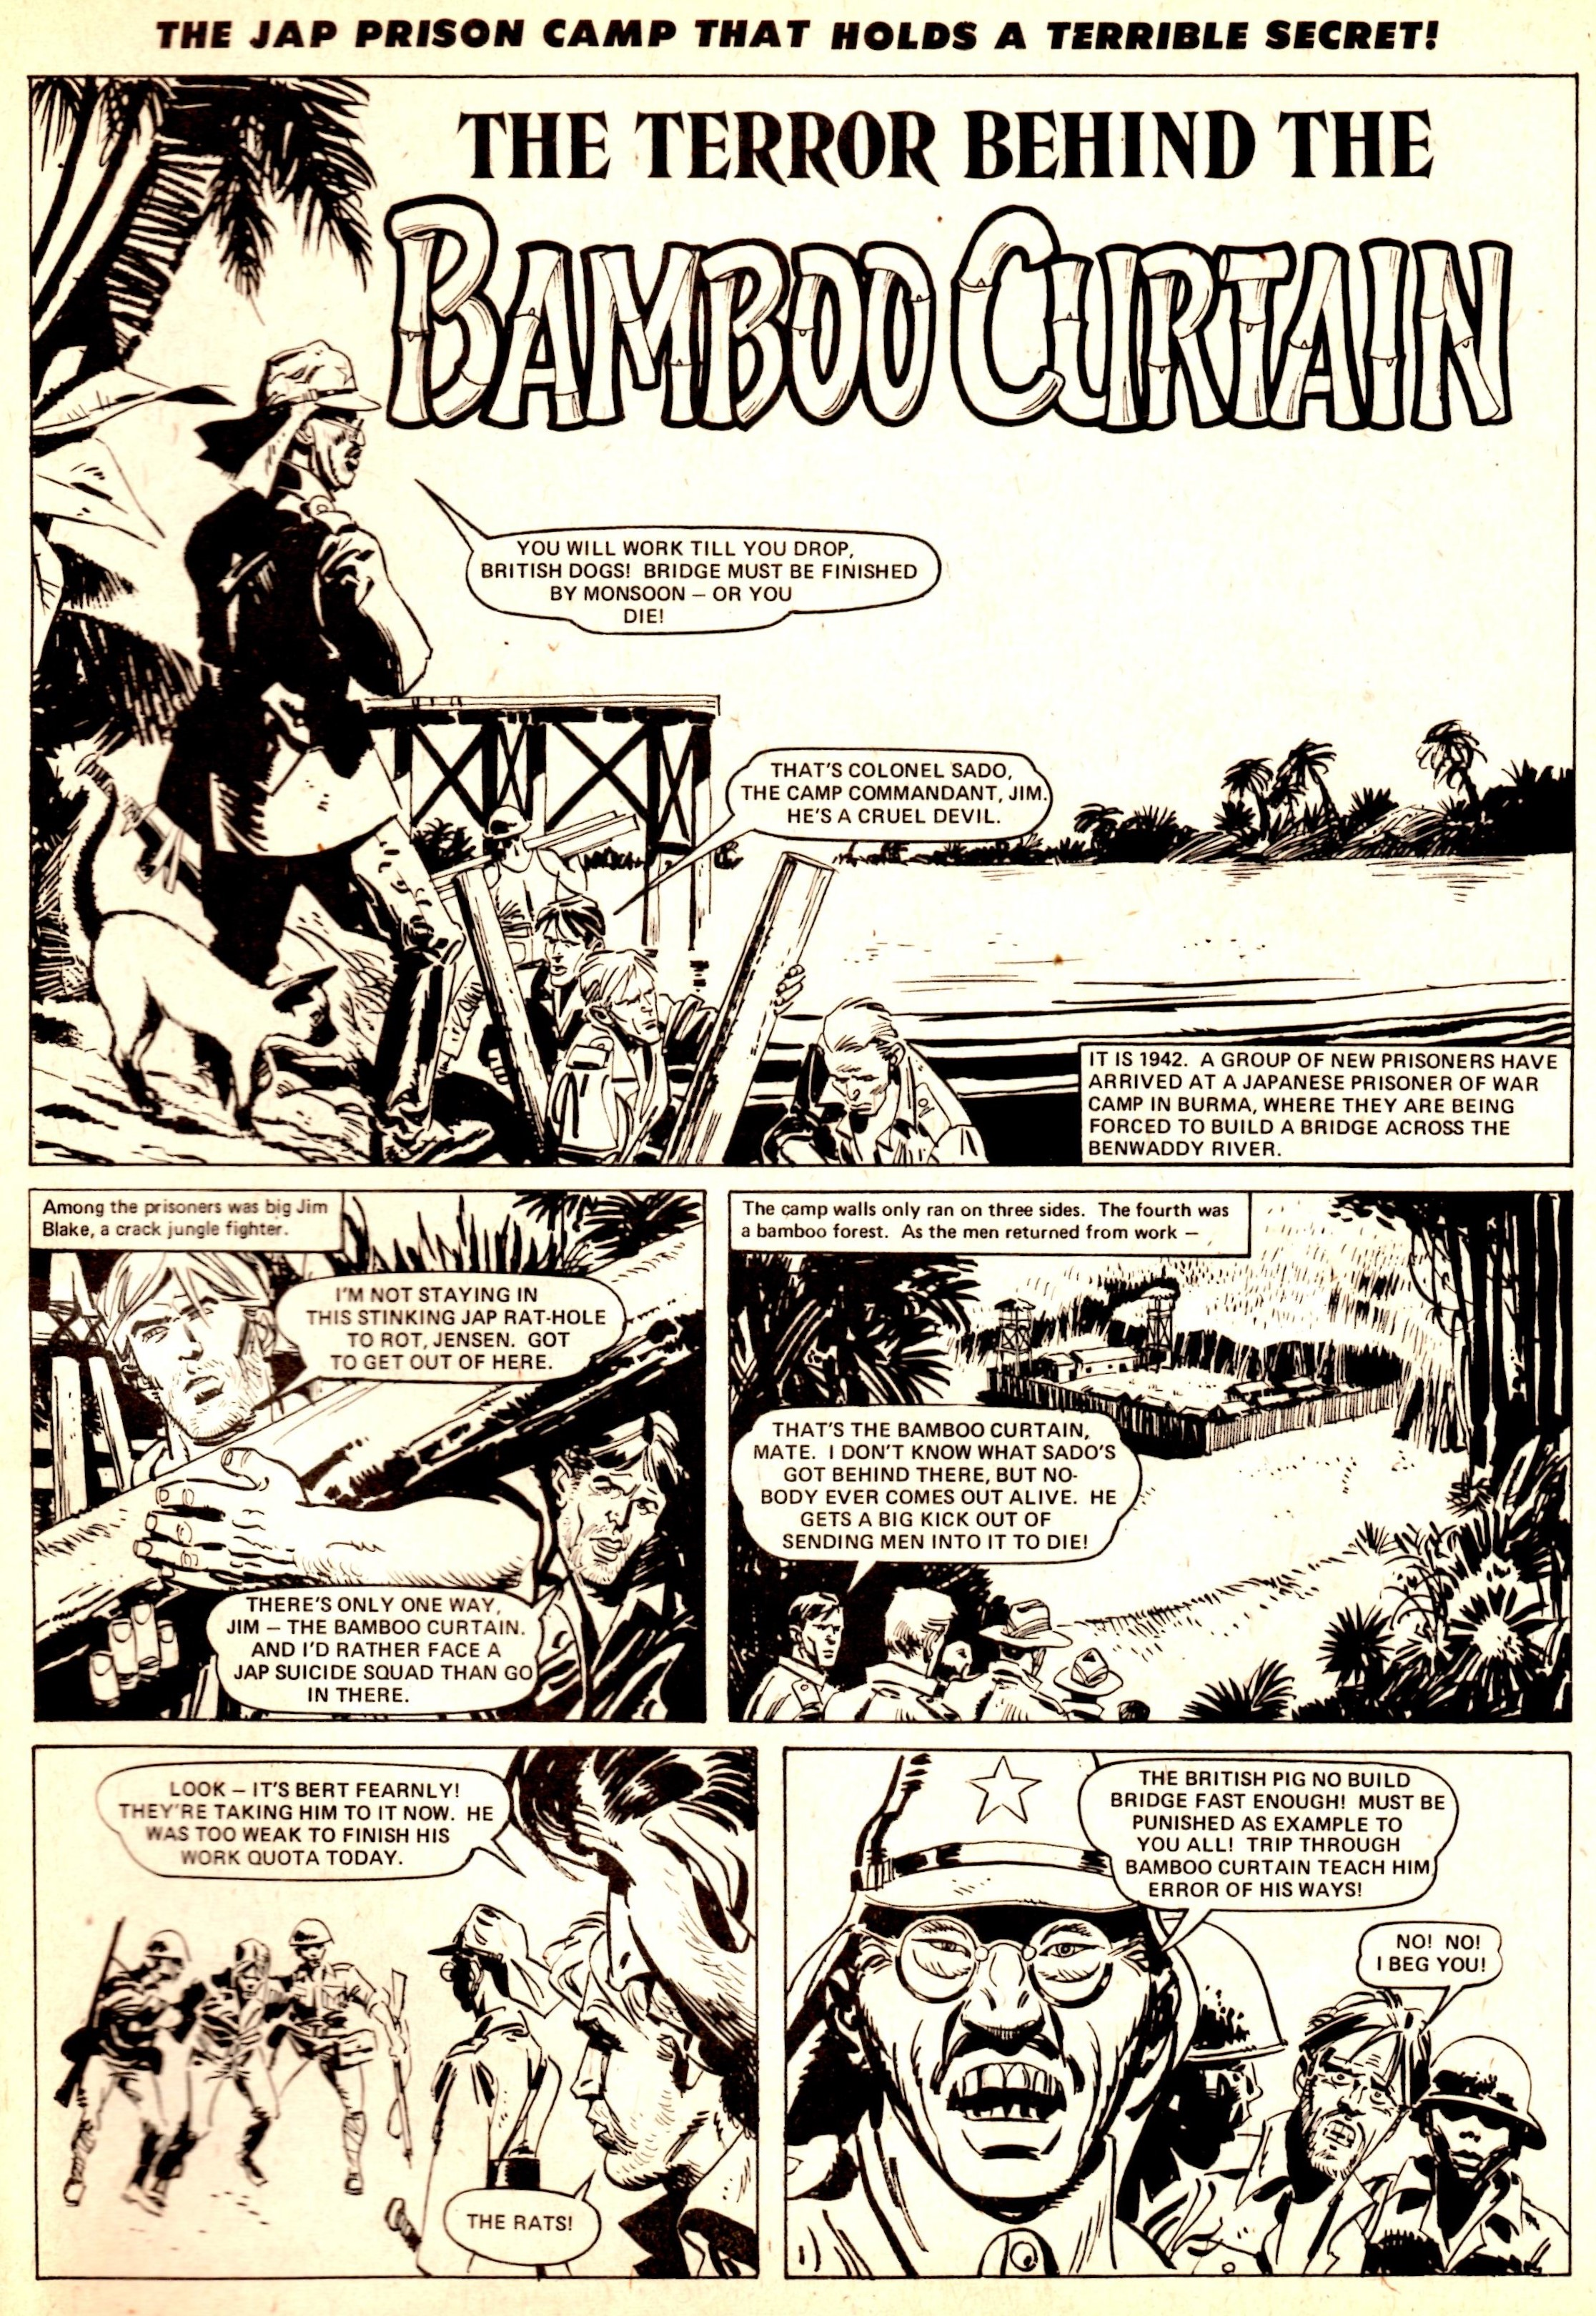 The Terror Behind the Bamboo Curtain: Charles Herring (writer), Giancarlo Alessandrini (artist)